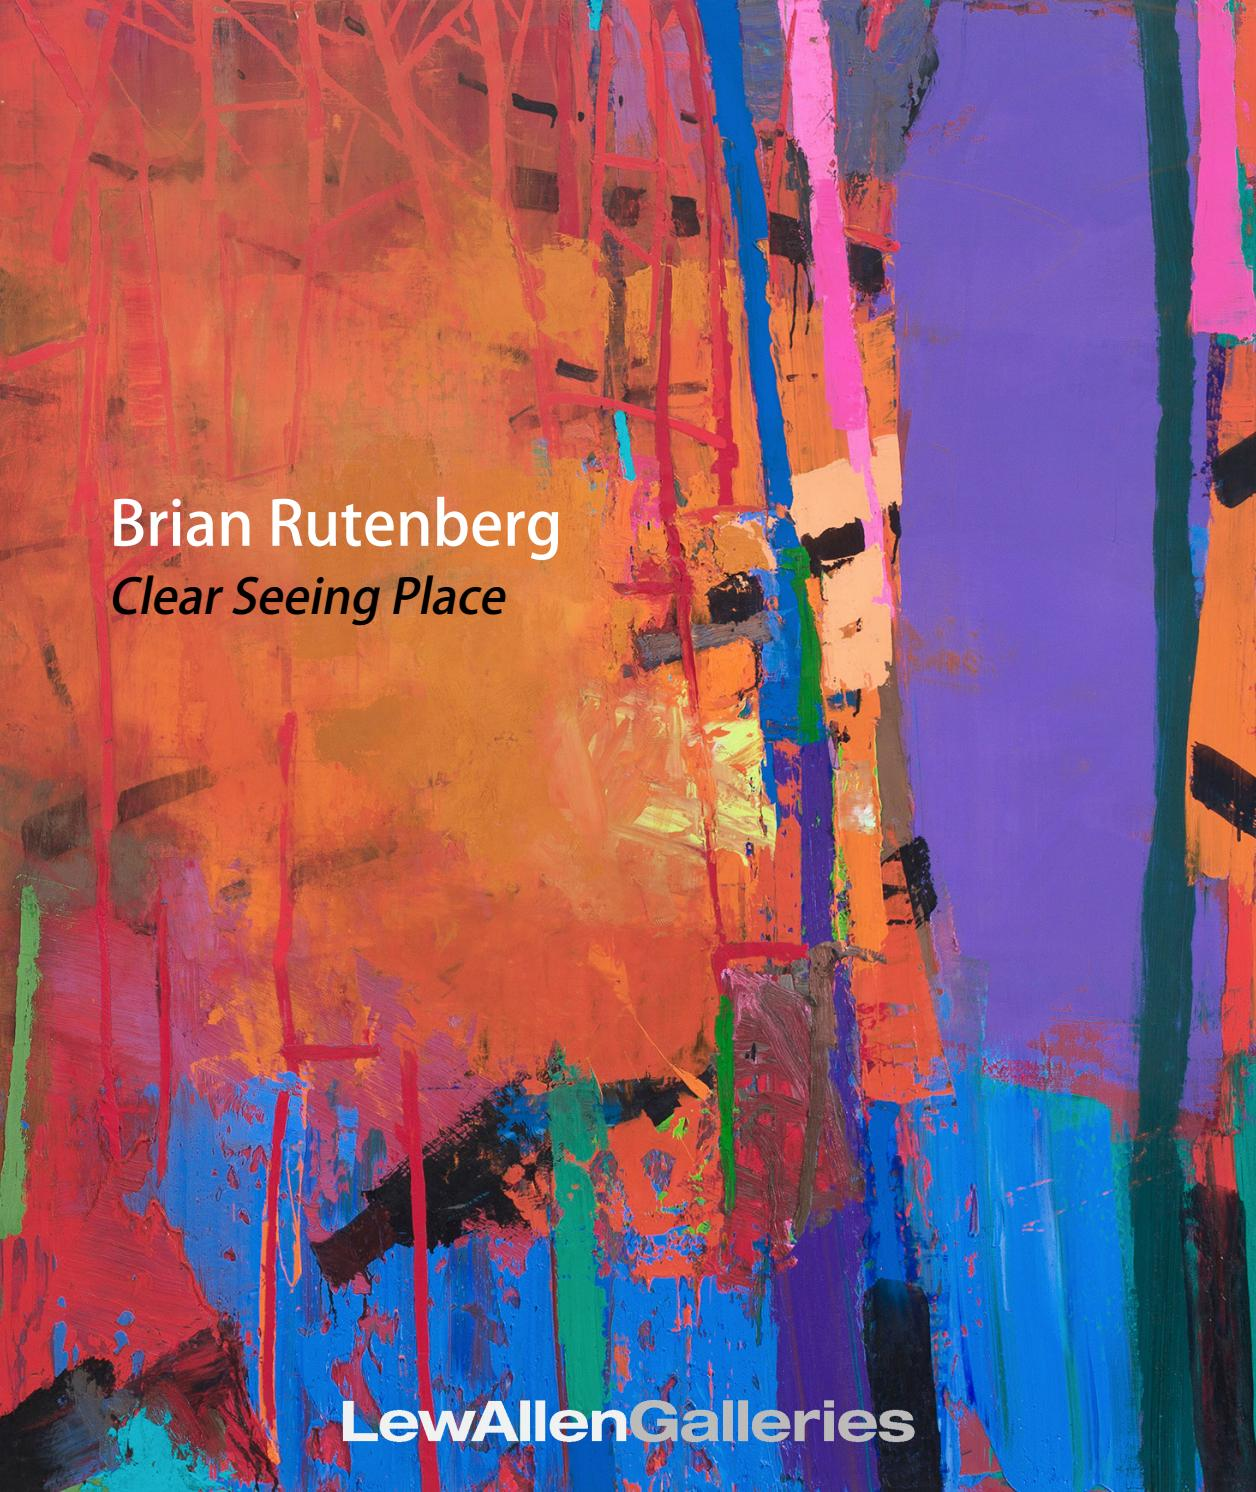 Brian Rutenberg Clear Seeing Place By Lewallen Galleries